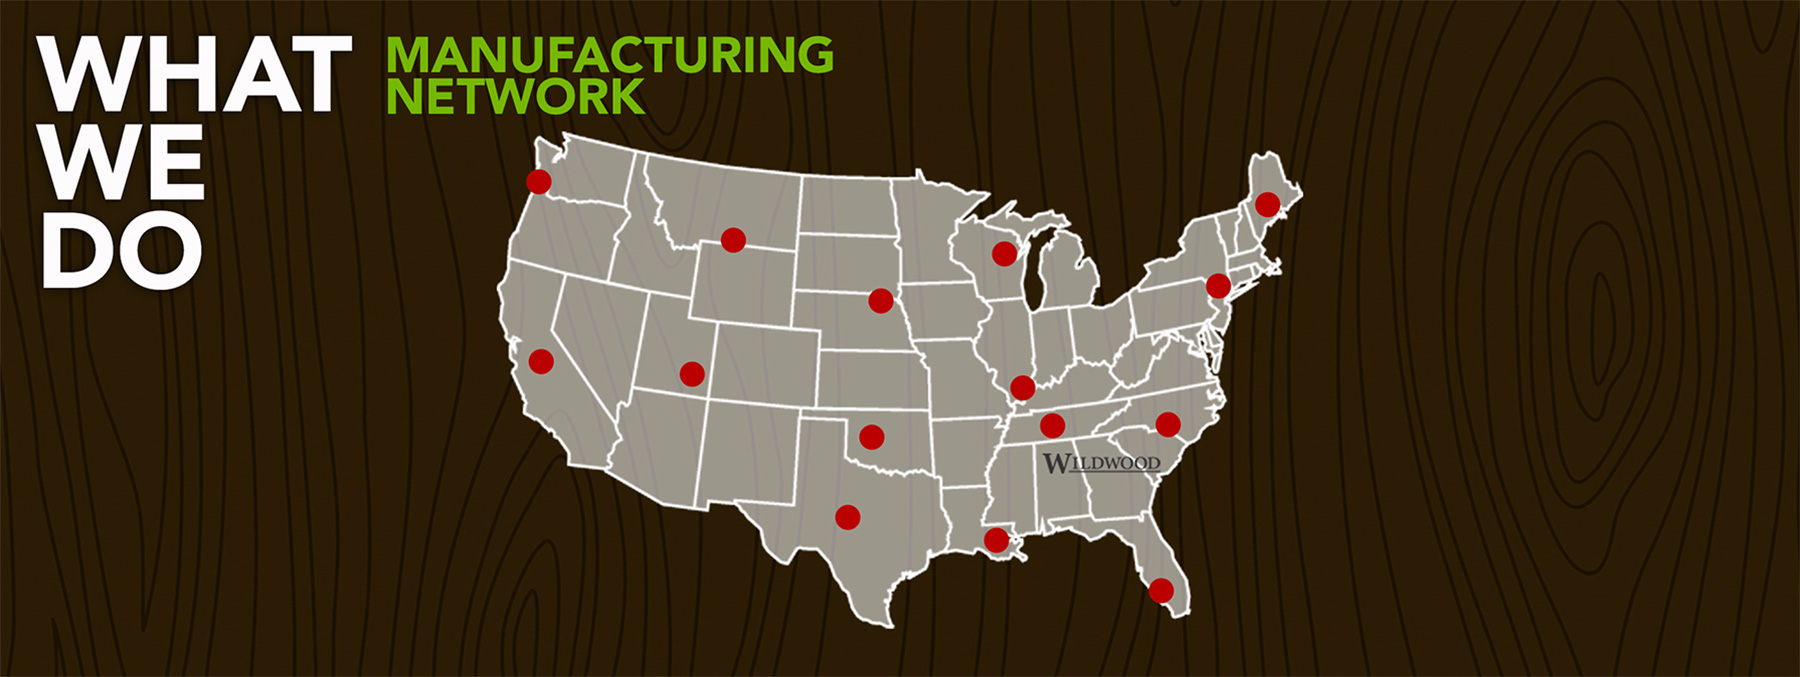 Wildwood Furniture Solutions - Manufacturing Network